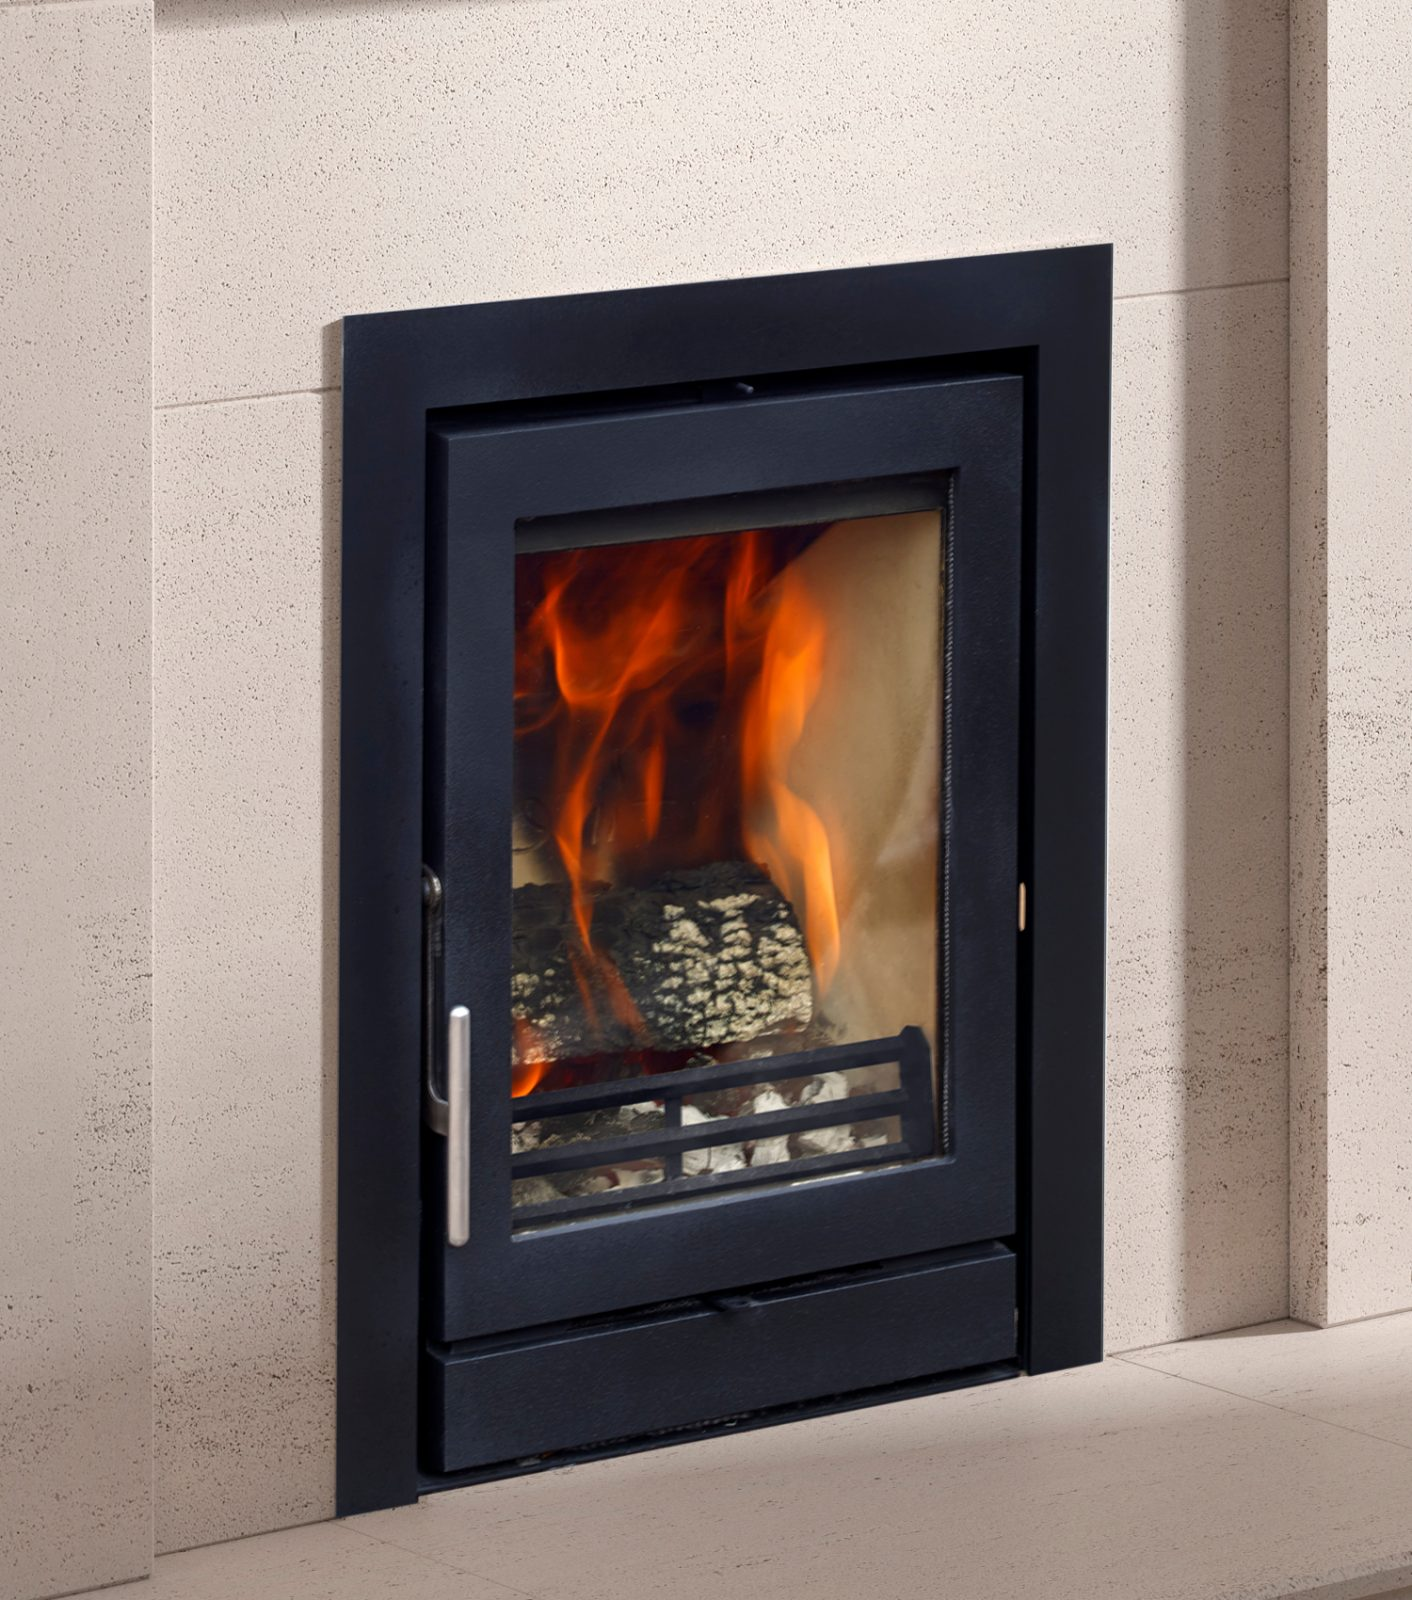 Fireline 5kw Multifuel Inset Stove Glass Door Engine Simply Stoves